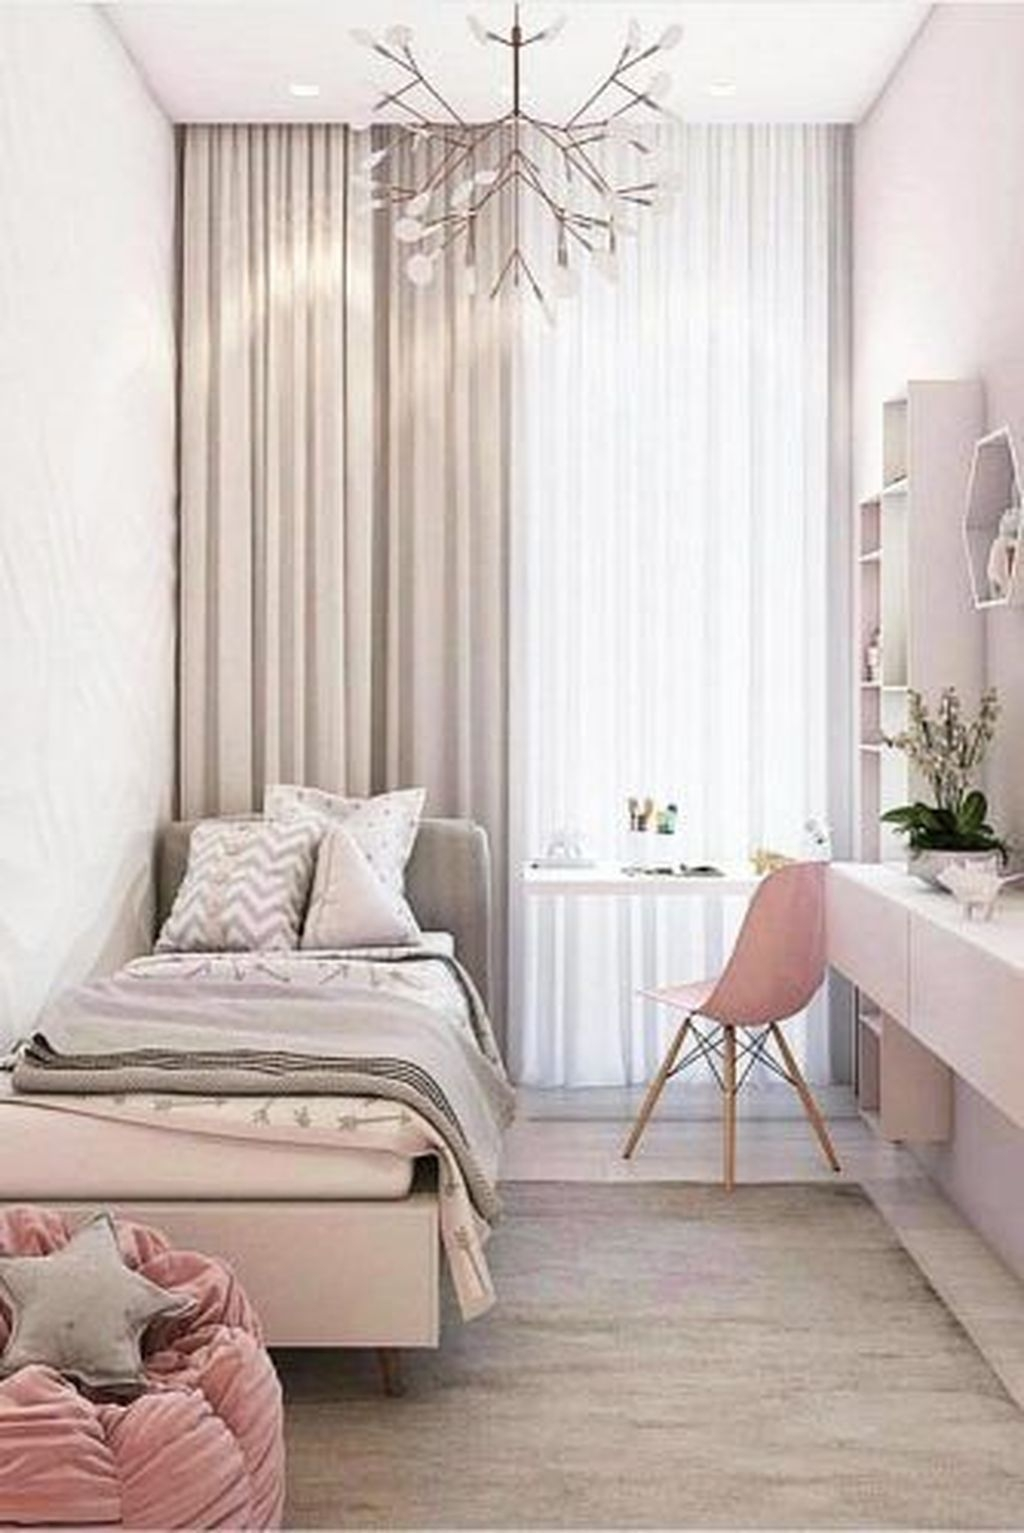 Charming Bedroom Designs Ideas That Will Inspire Your Kids25